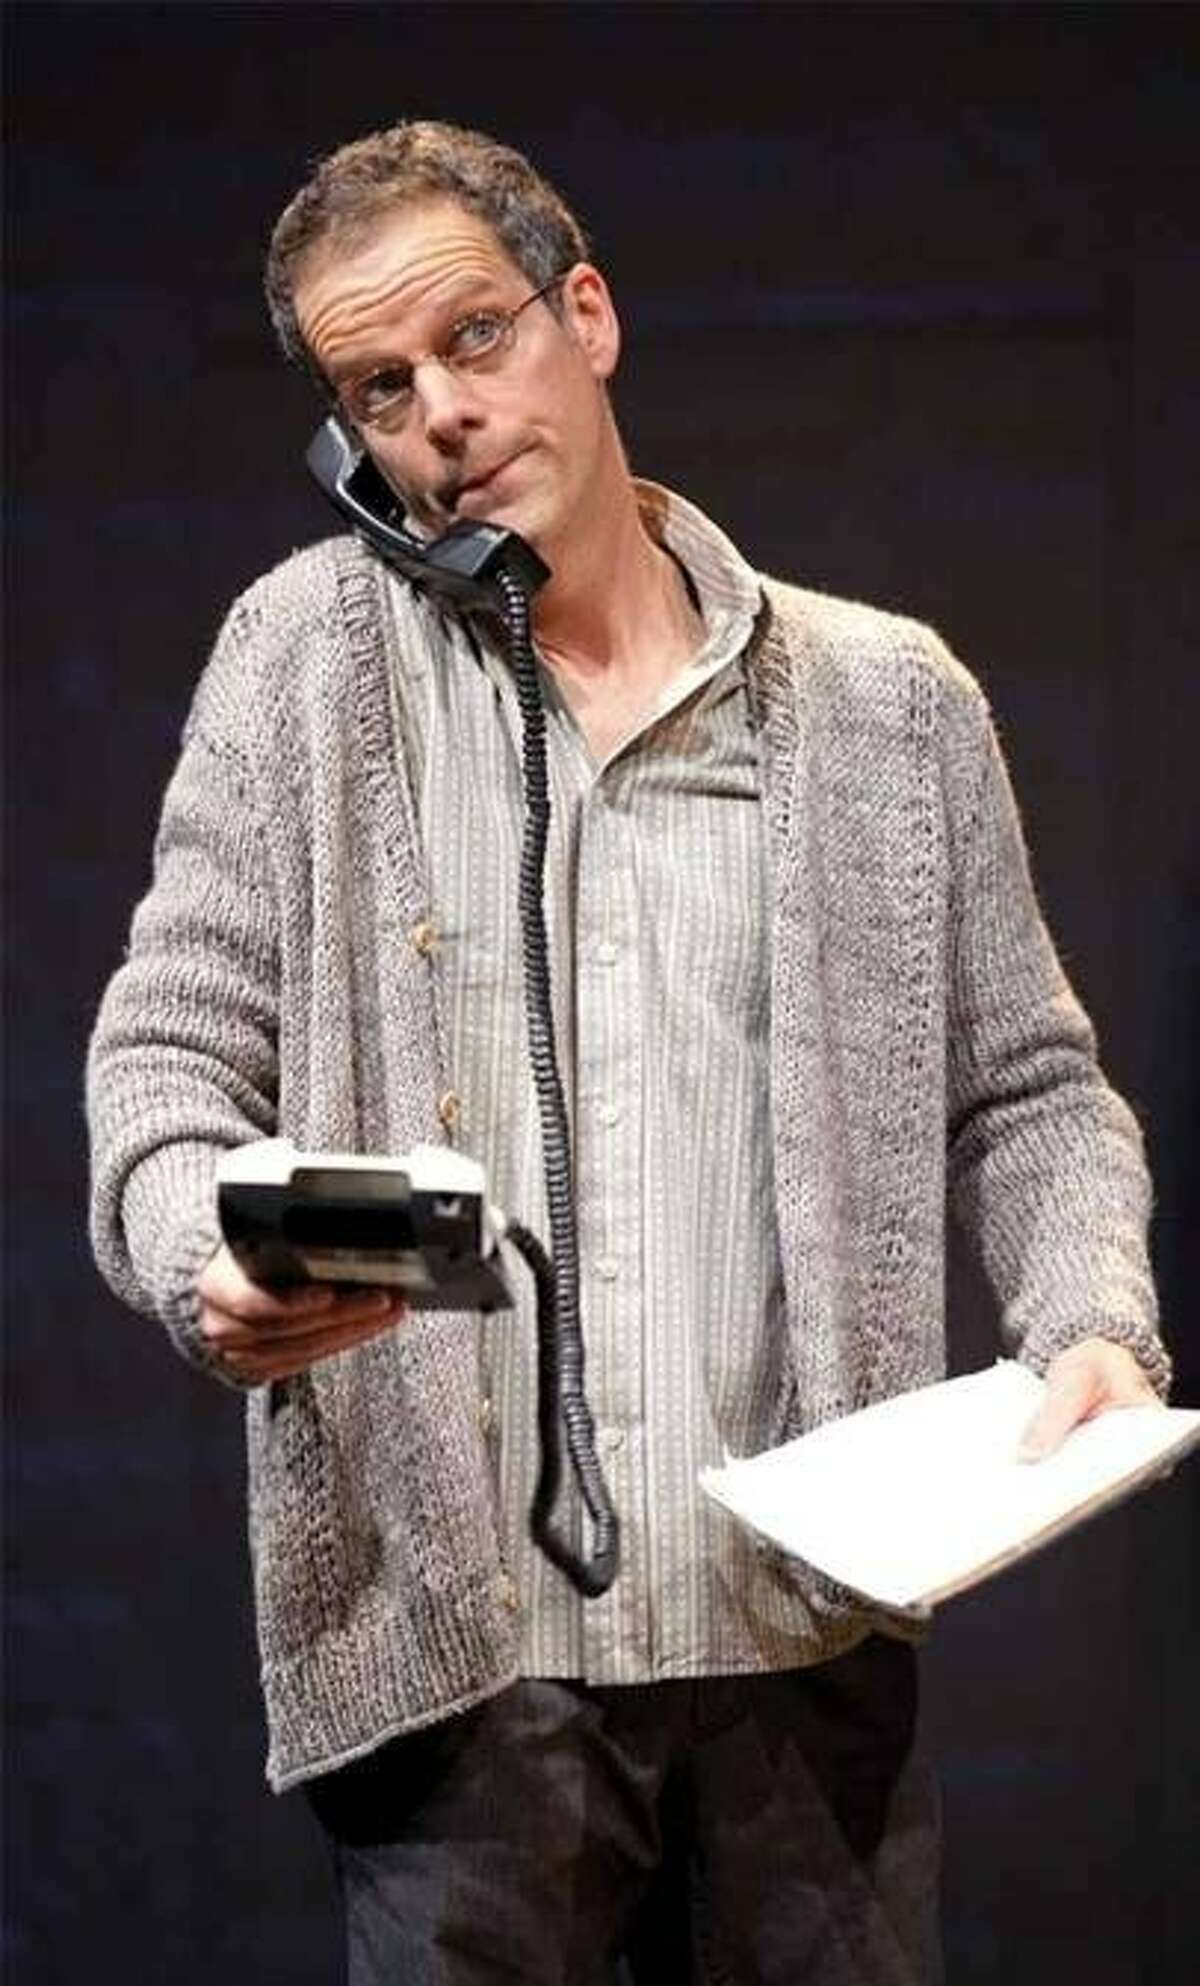 Patrick Breen plays Ned Weeks in Larry Kramer's The Normal Heart at the American Conservatory Theater through Oct. 7. Photo by Scott Suchman